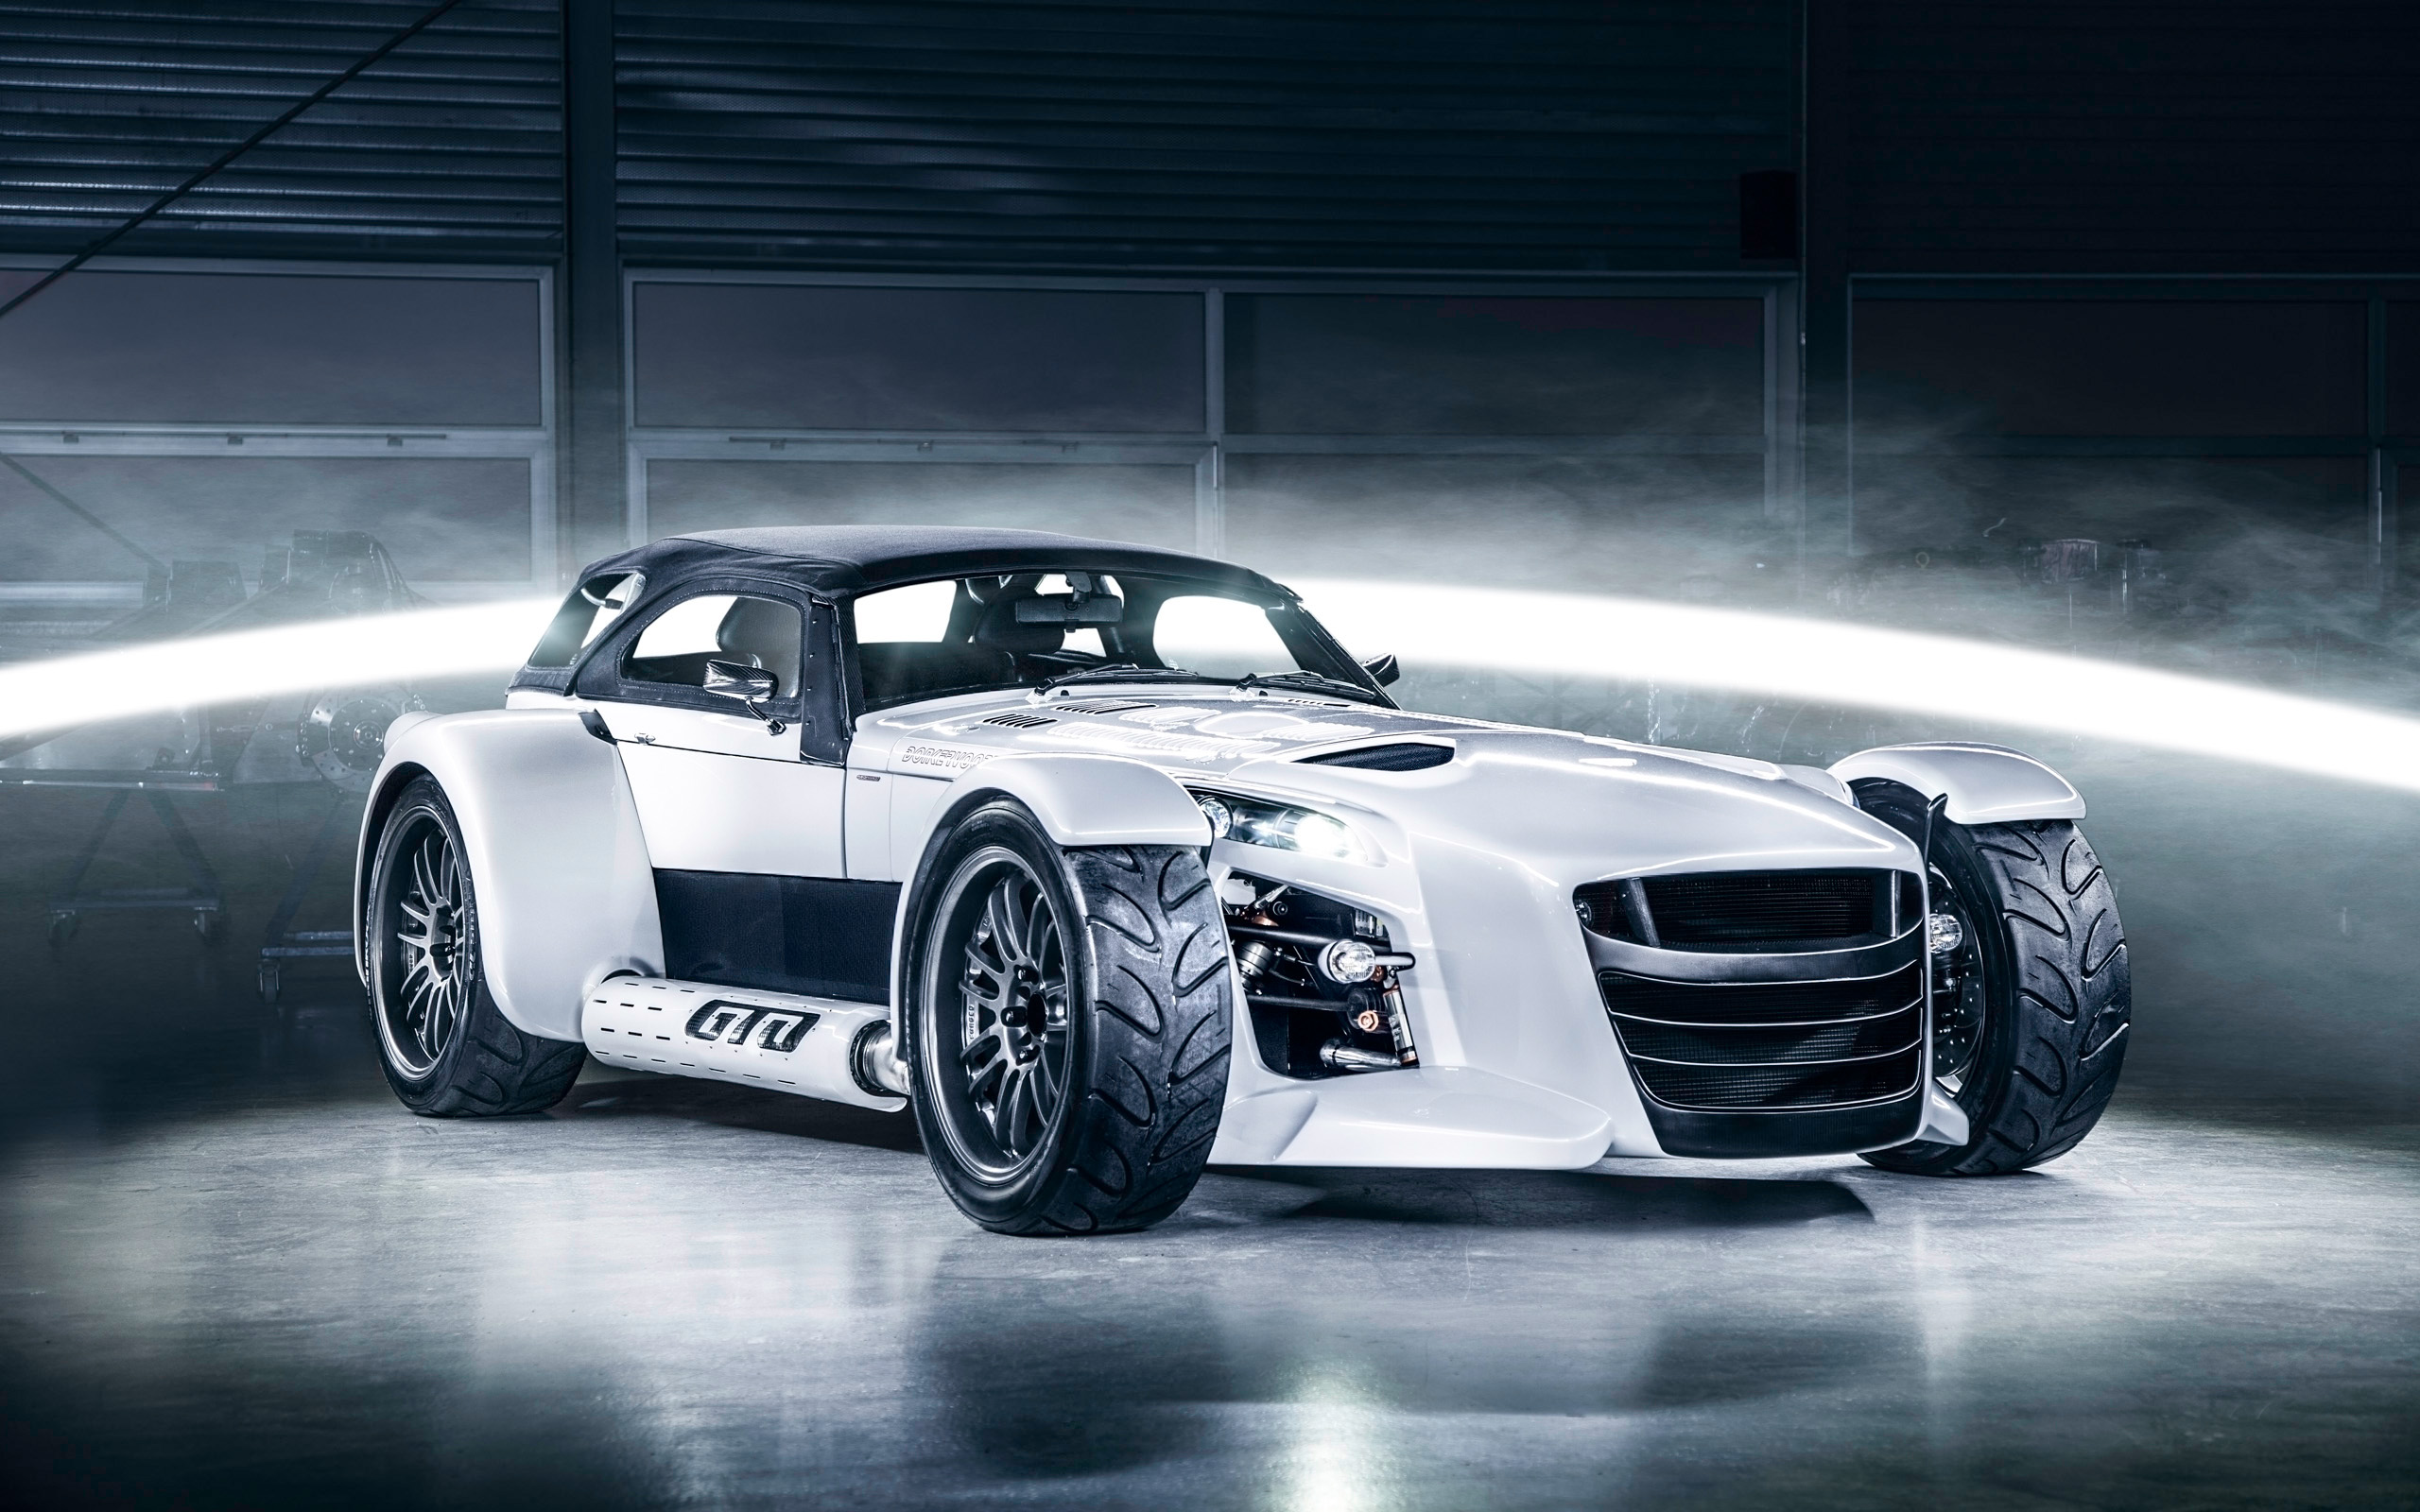 Acura Exotic Car >> 2015 Donkervoort D8 GTO Bilster Berg Edition Wallpaper | HD Car Wallpapers | ID #5031